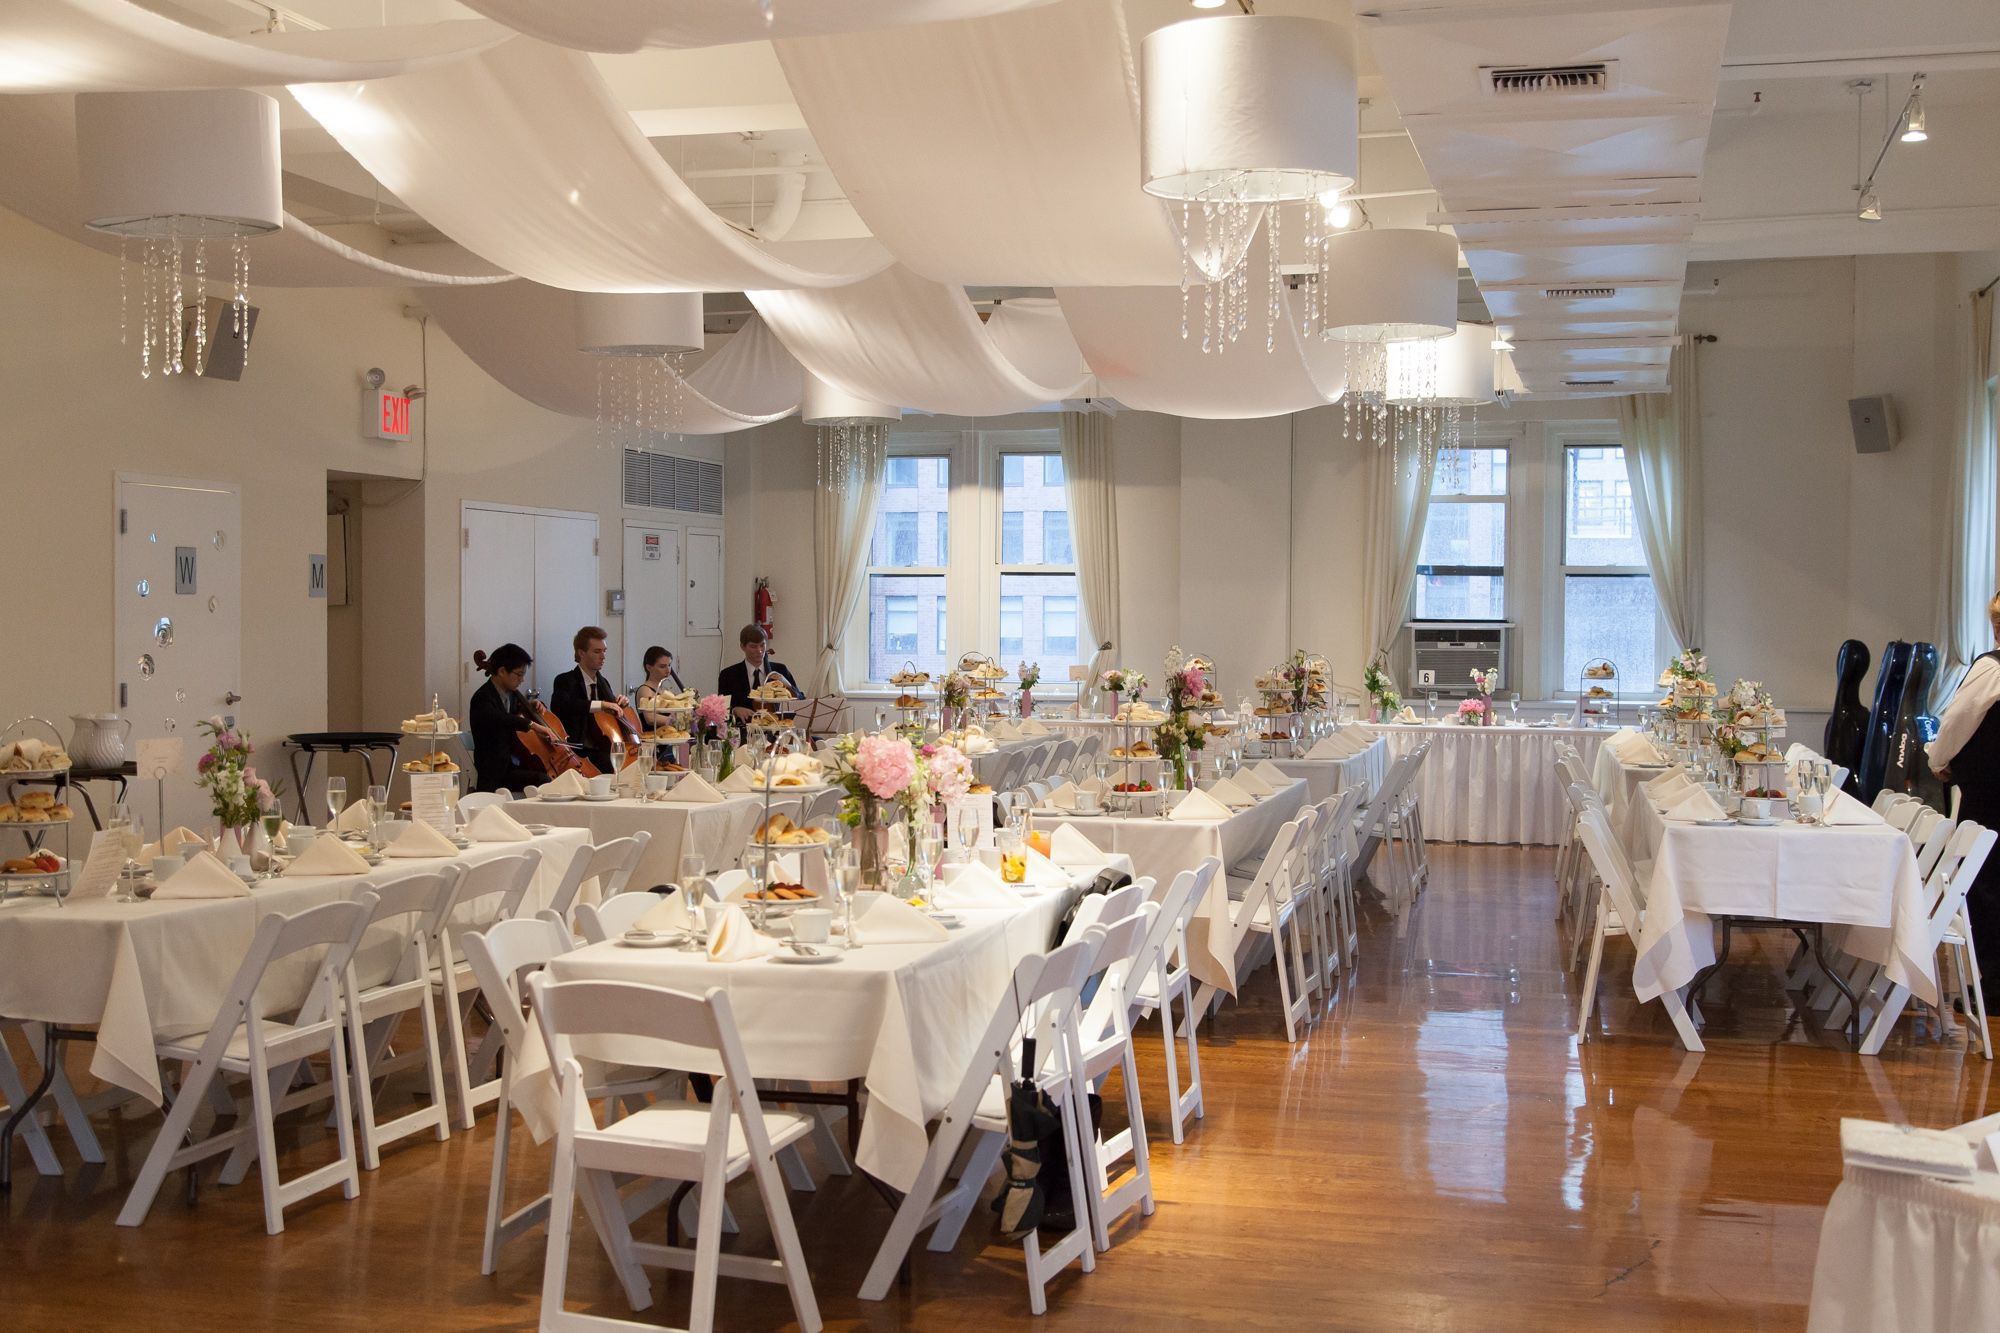 wedding setup at the midtown loft event space in nyc midown loft